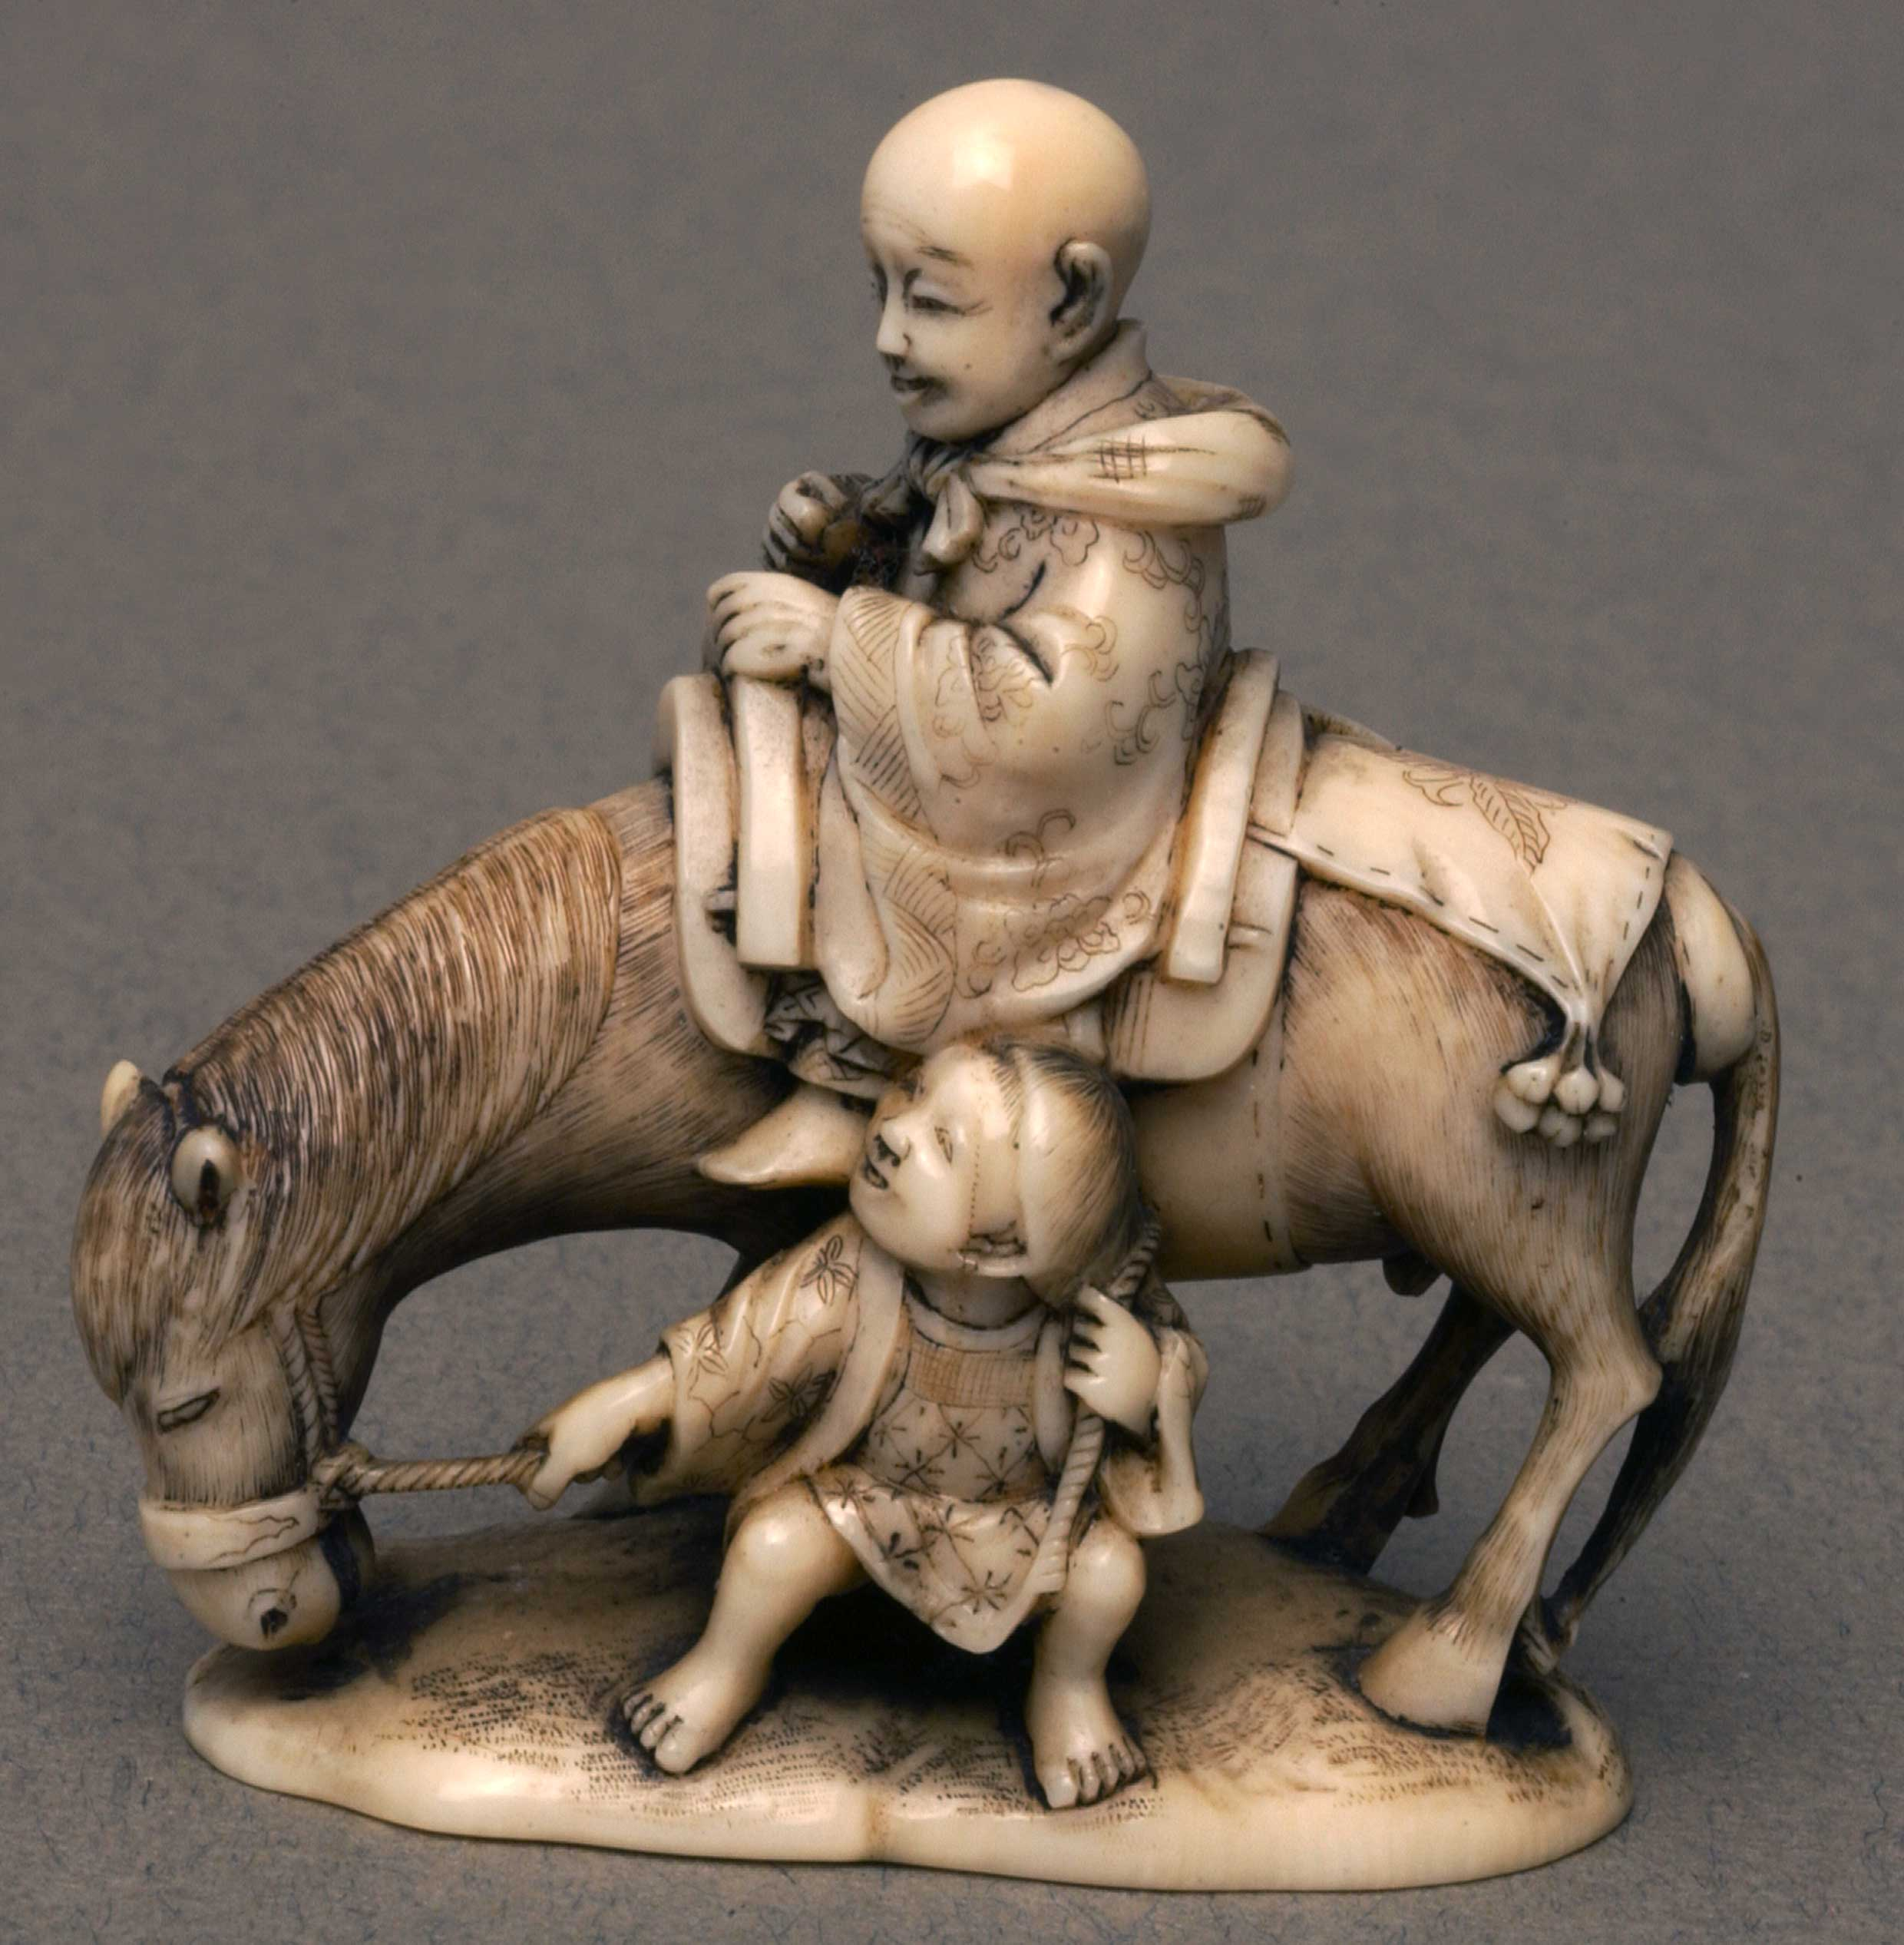 Netsuke depicting a man seated on a donkey